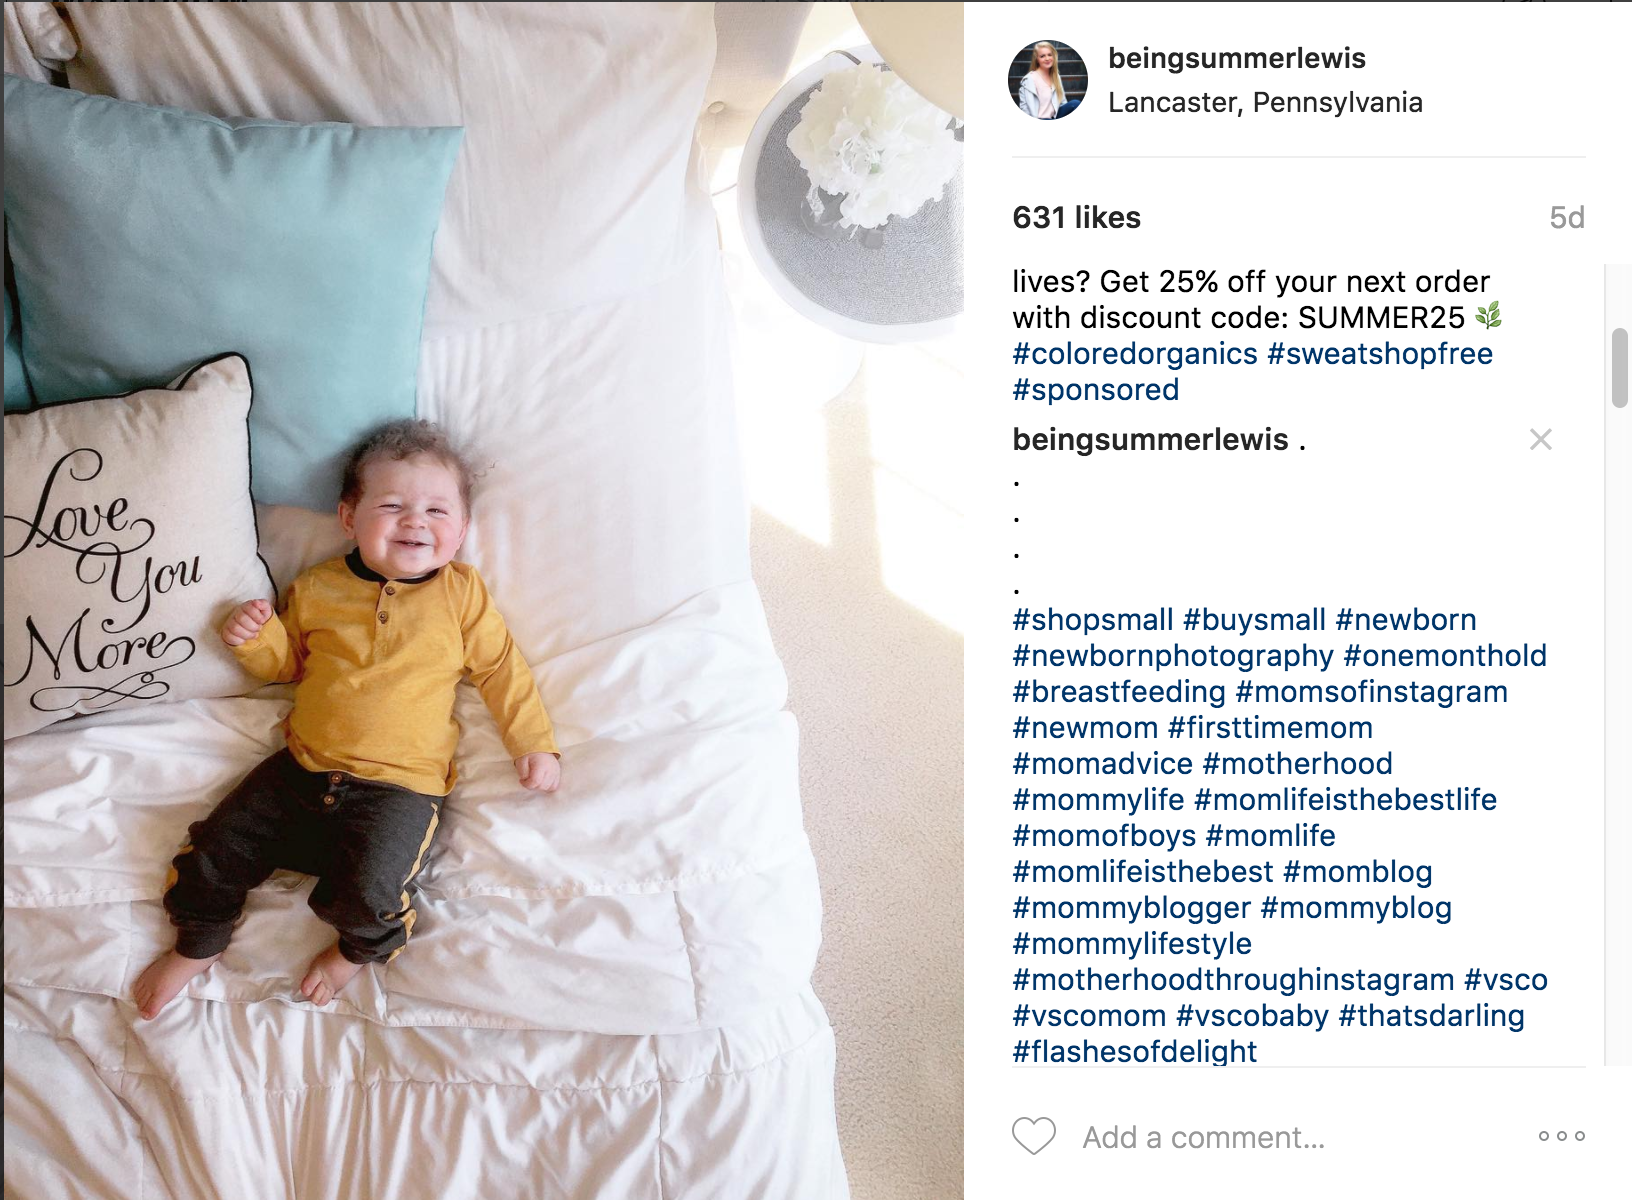 This is how I like to format my hashtags. When doing a sponsored post, I always add the brand's hashtags in my caption. All other hashtags I place in the comment below.